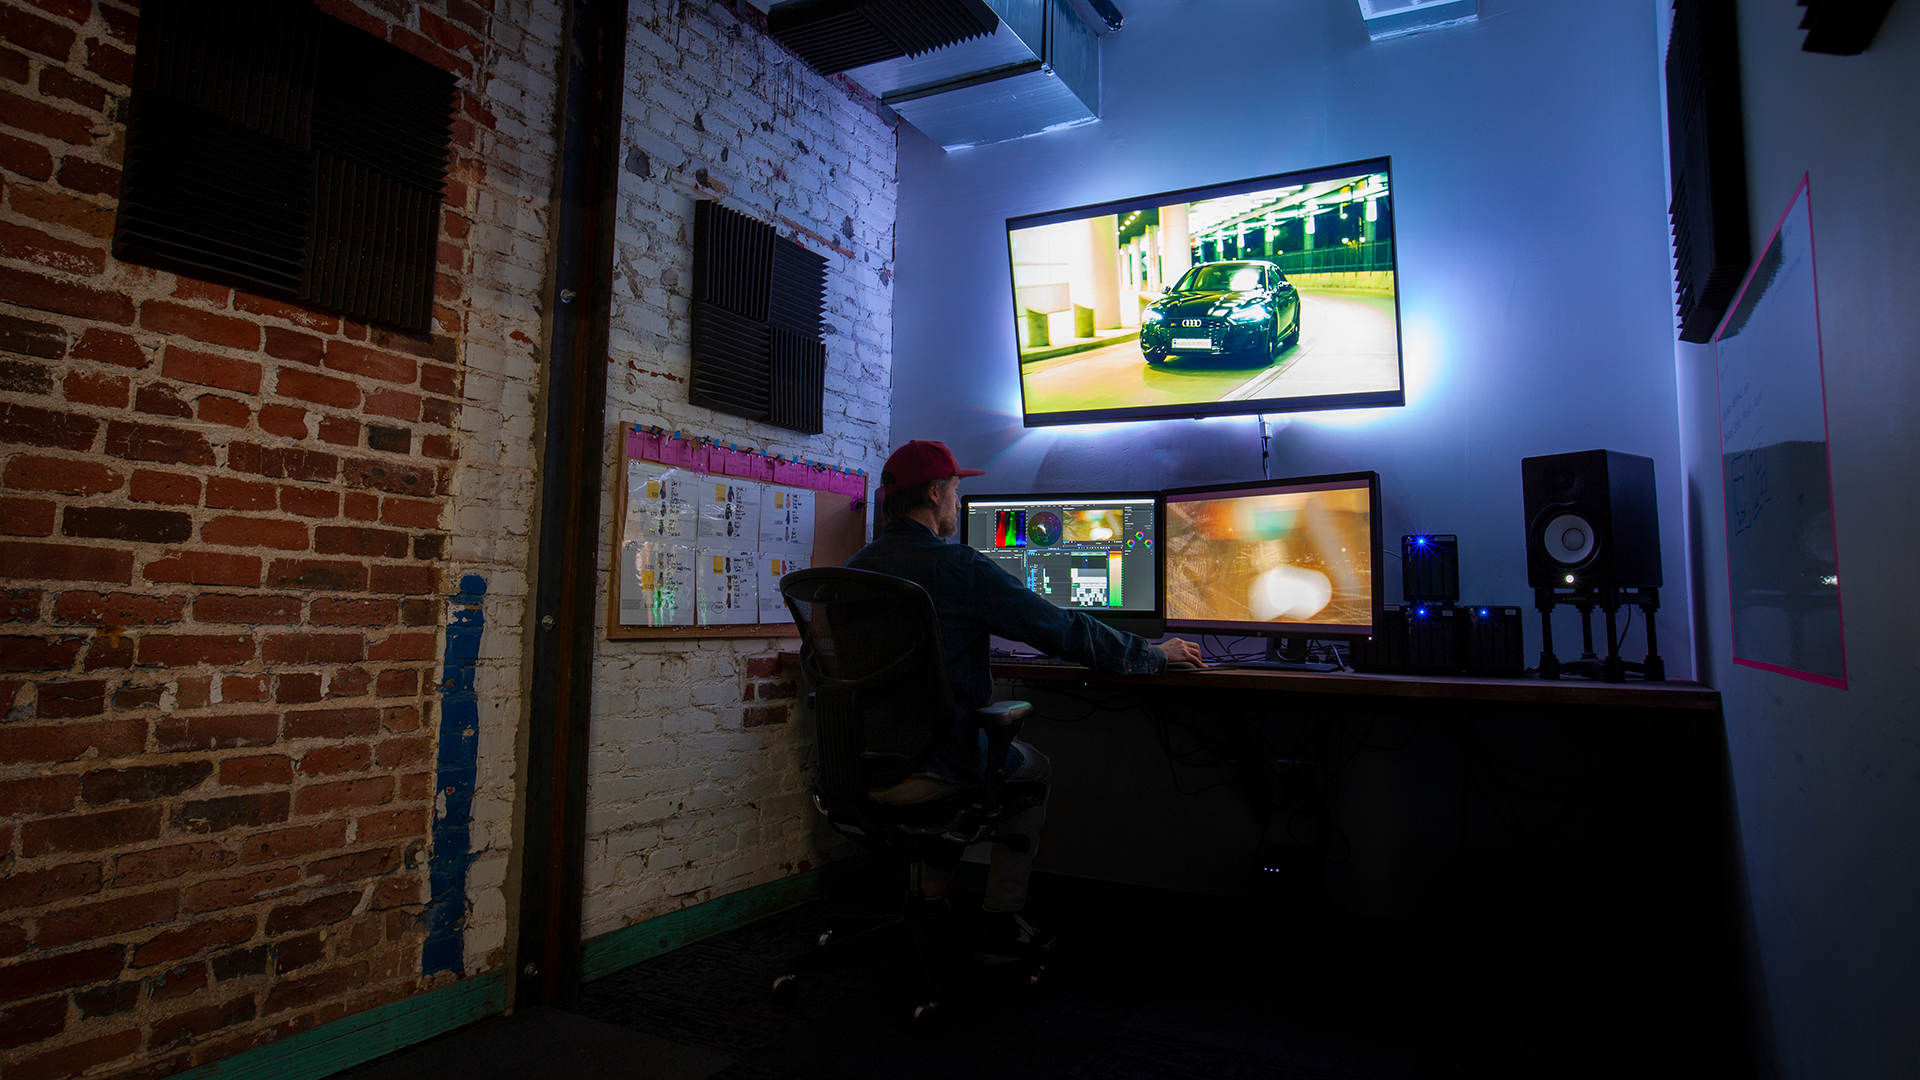 Level 1 Film and Video Production Company Editing Room Director Josh Berman Denver Colorado Photo 16x9